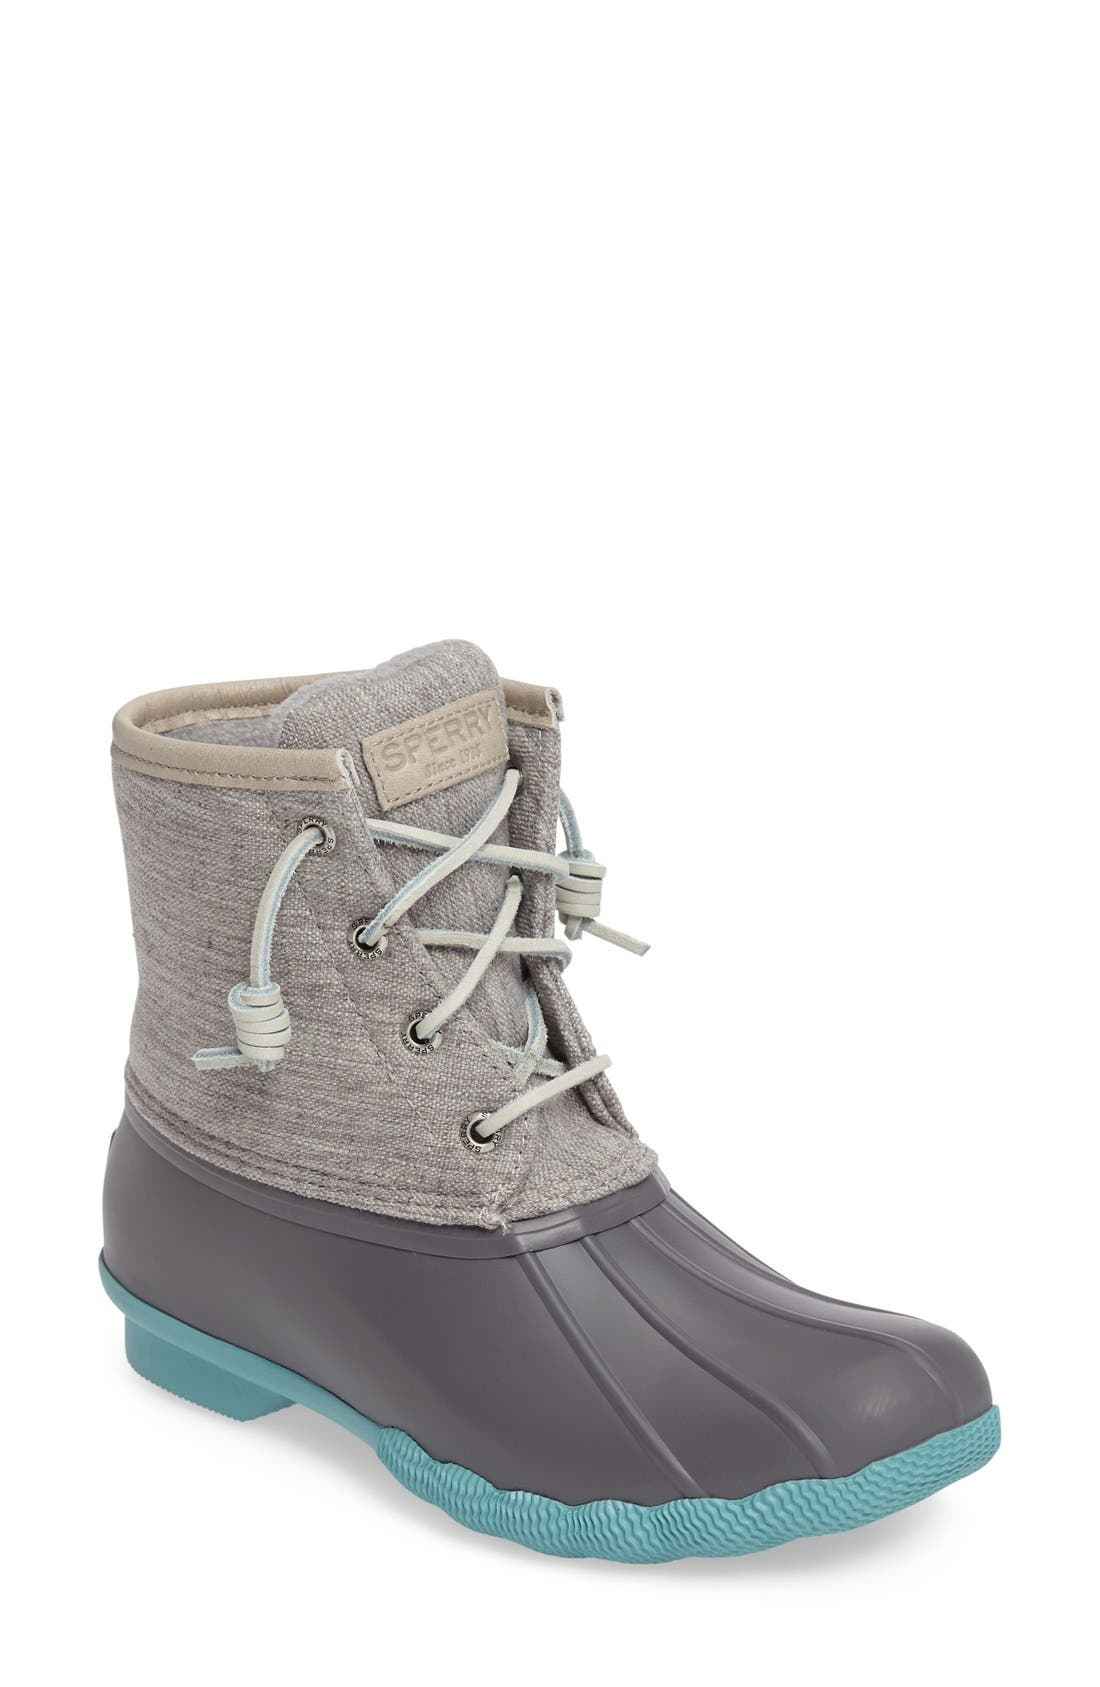 Alternate Image 1 Selected - Sperry 'Saltwater' Duck Boot (Women)